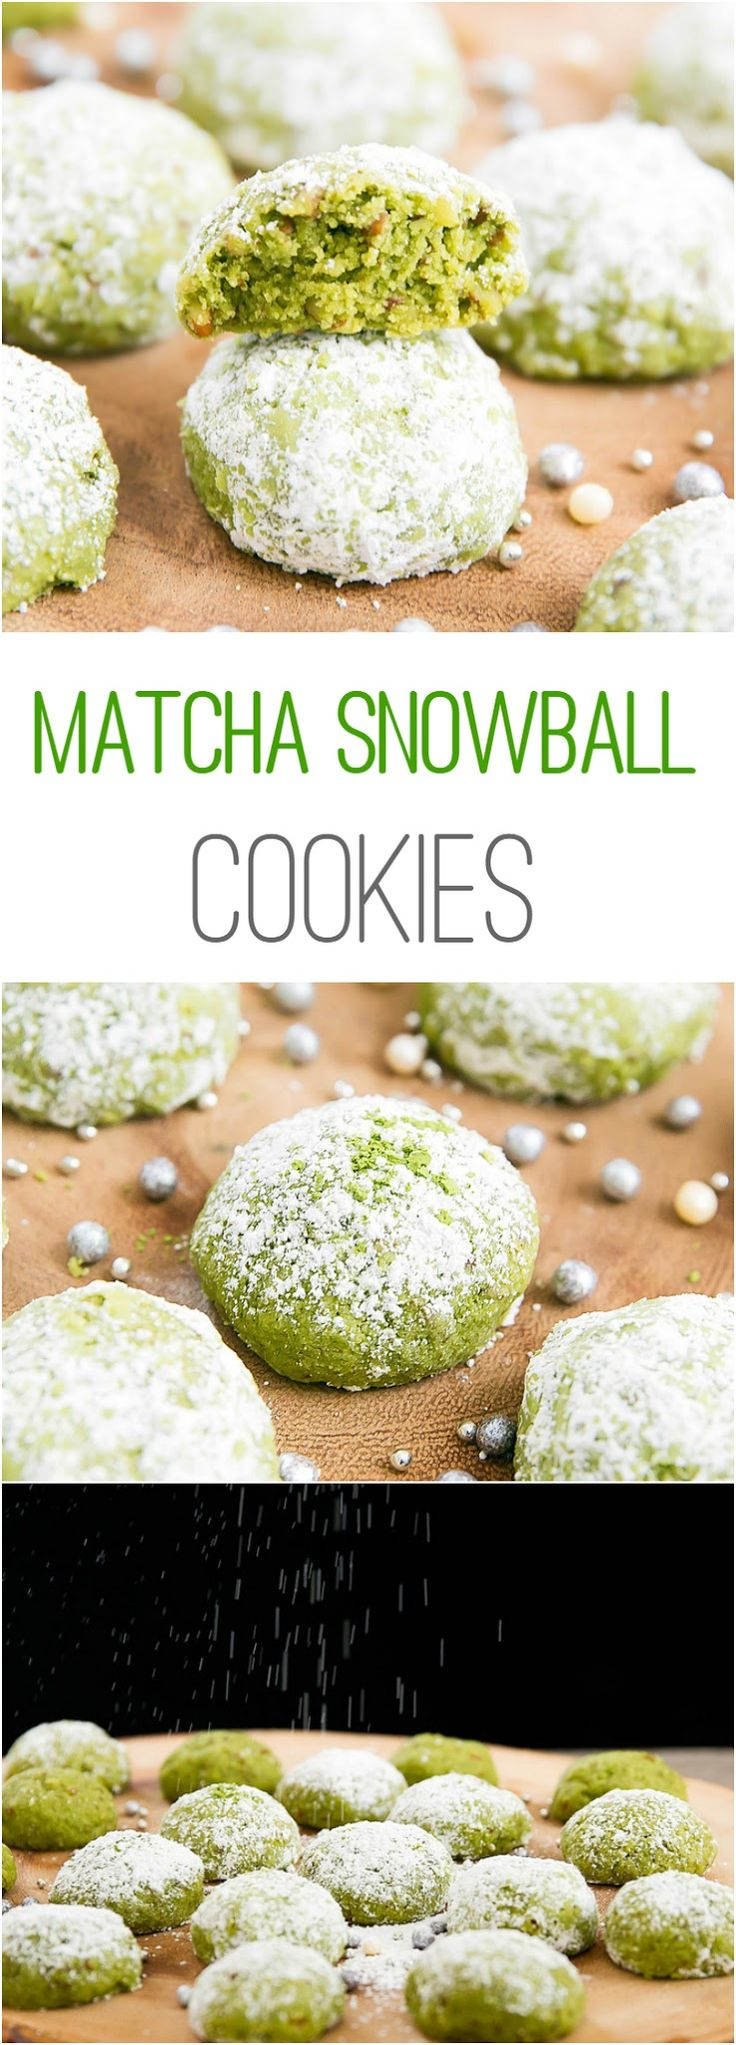 Matcha Snowball Cookies. An easy holiday cookie that can be made ahead of time.